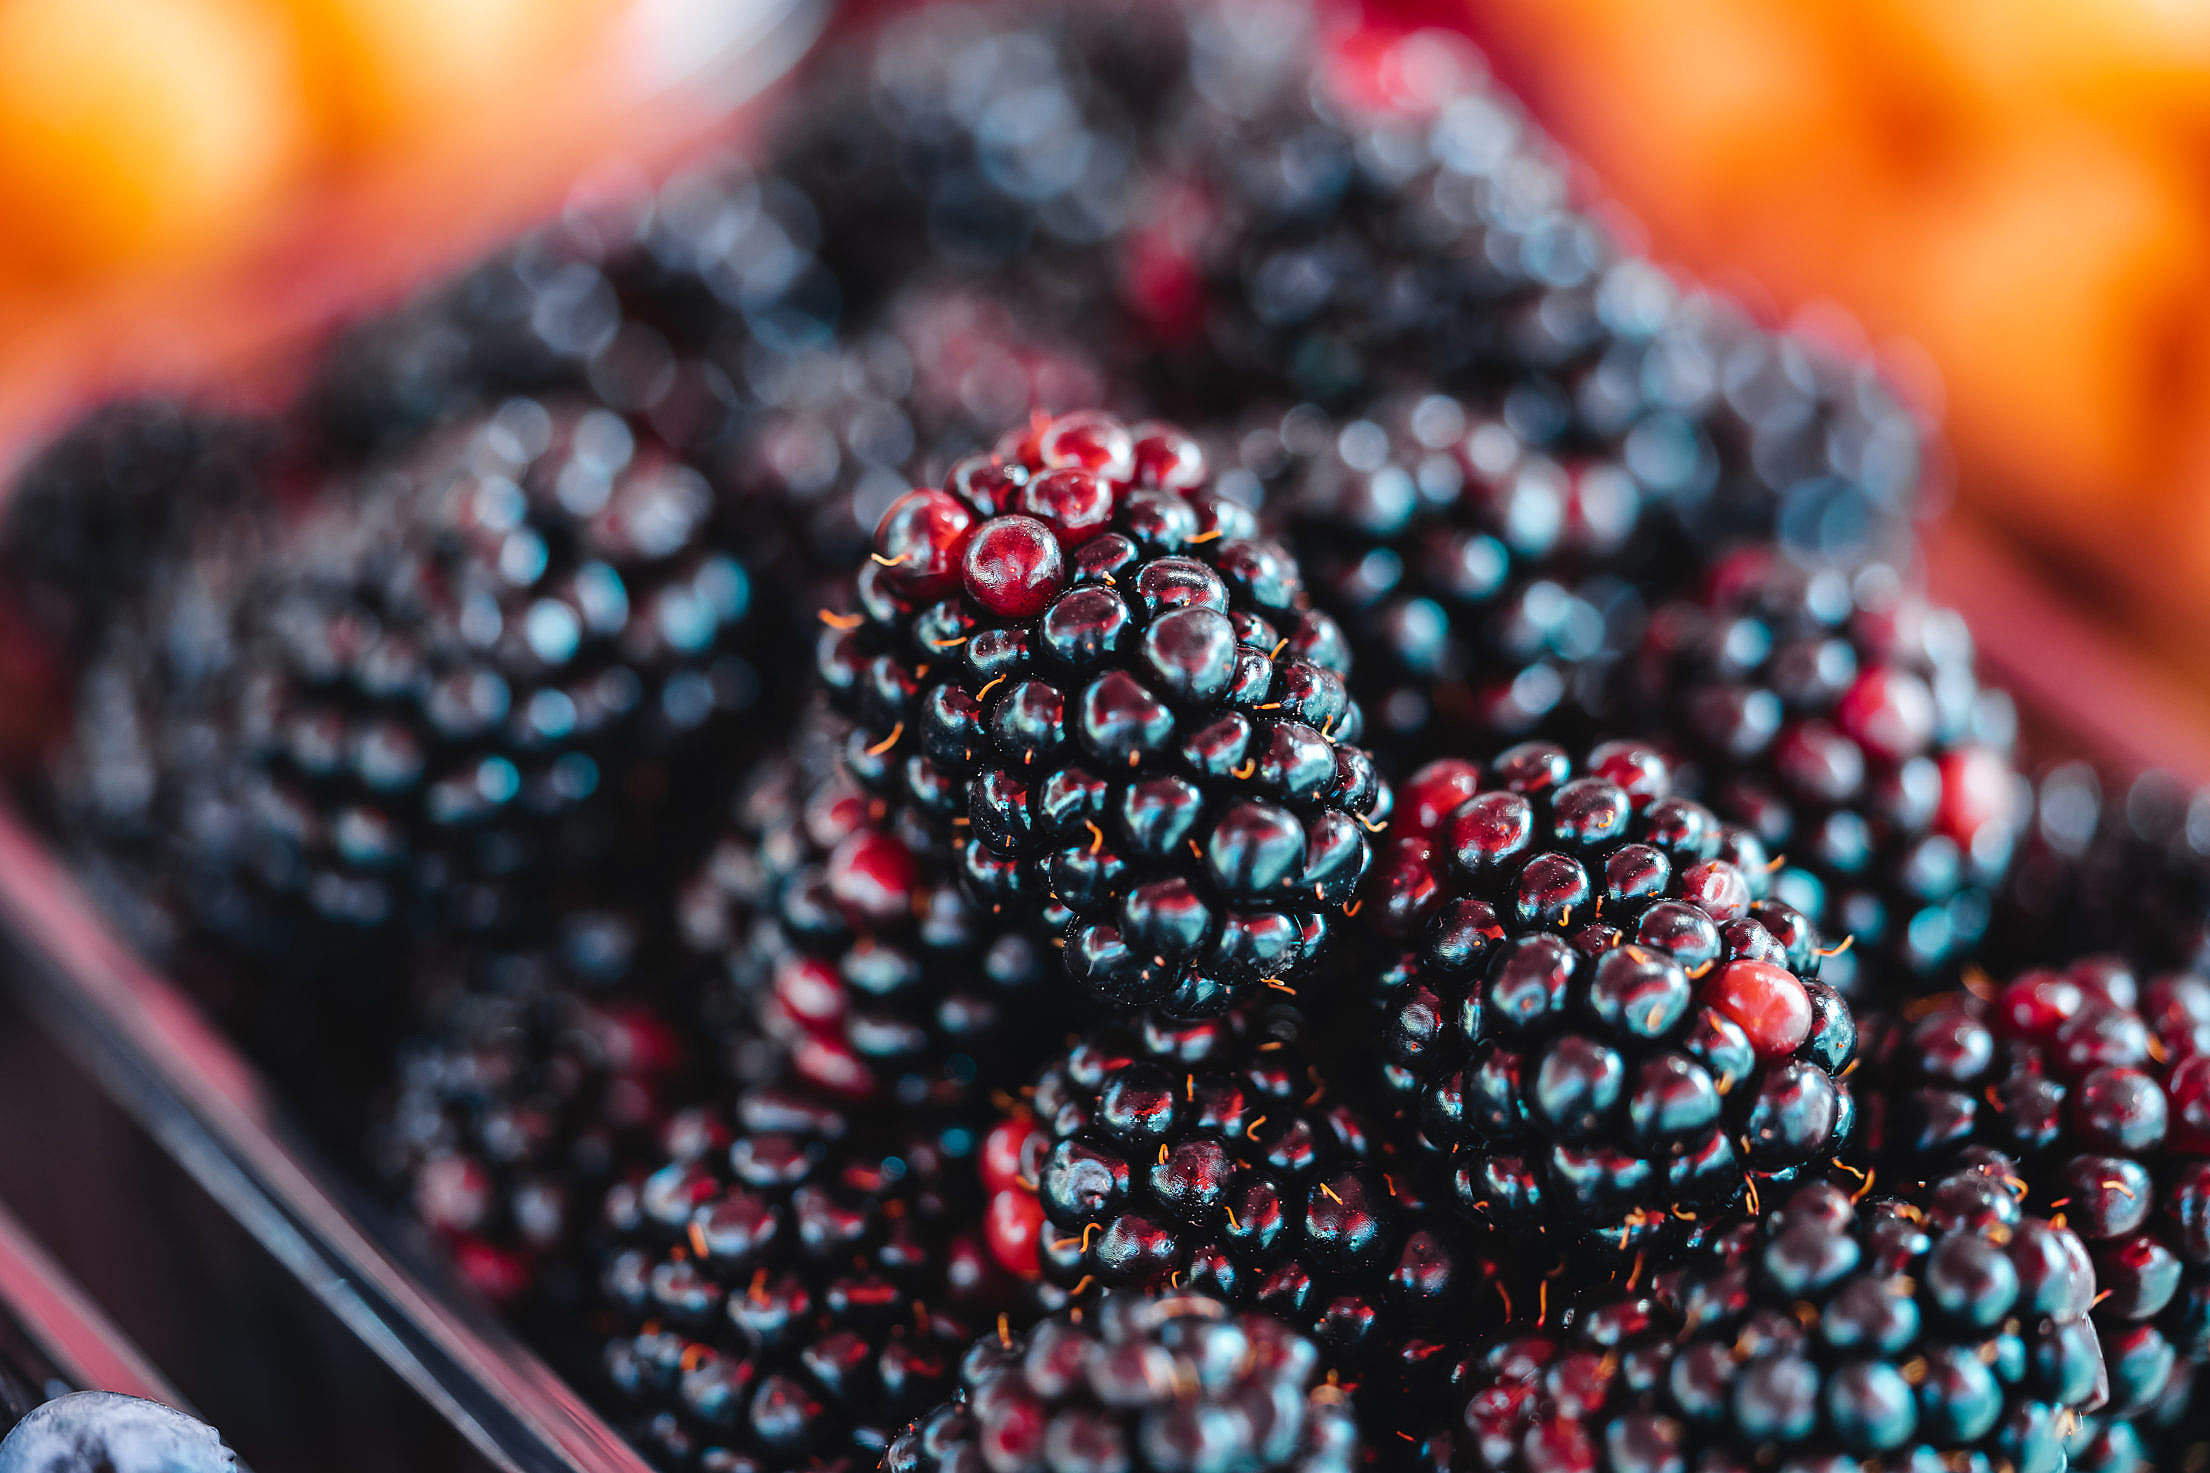 Basket of Blackberries at The Farmers Market Free Stock Photo